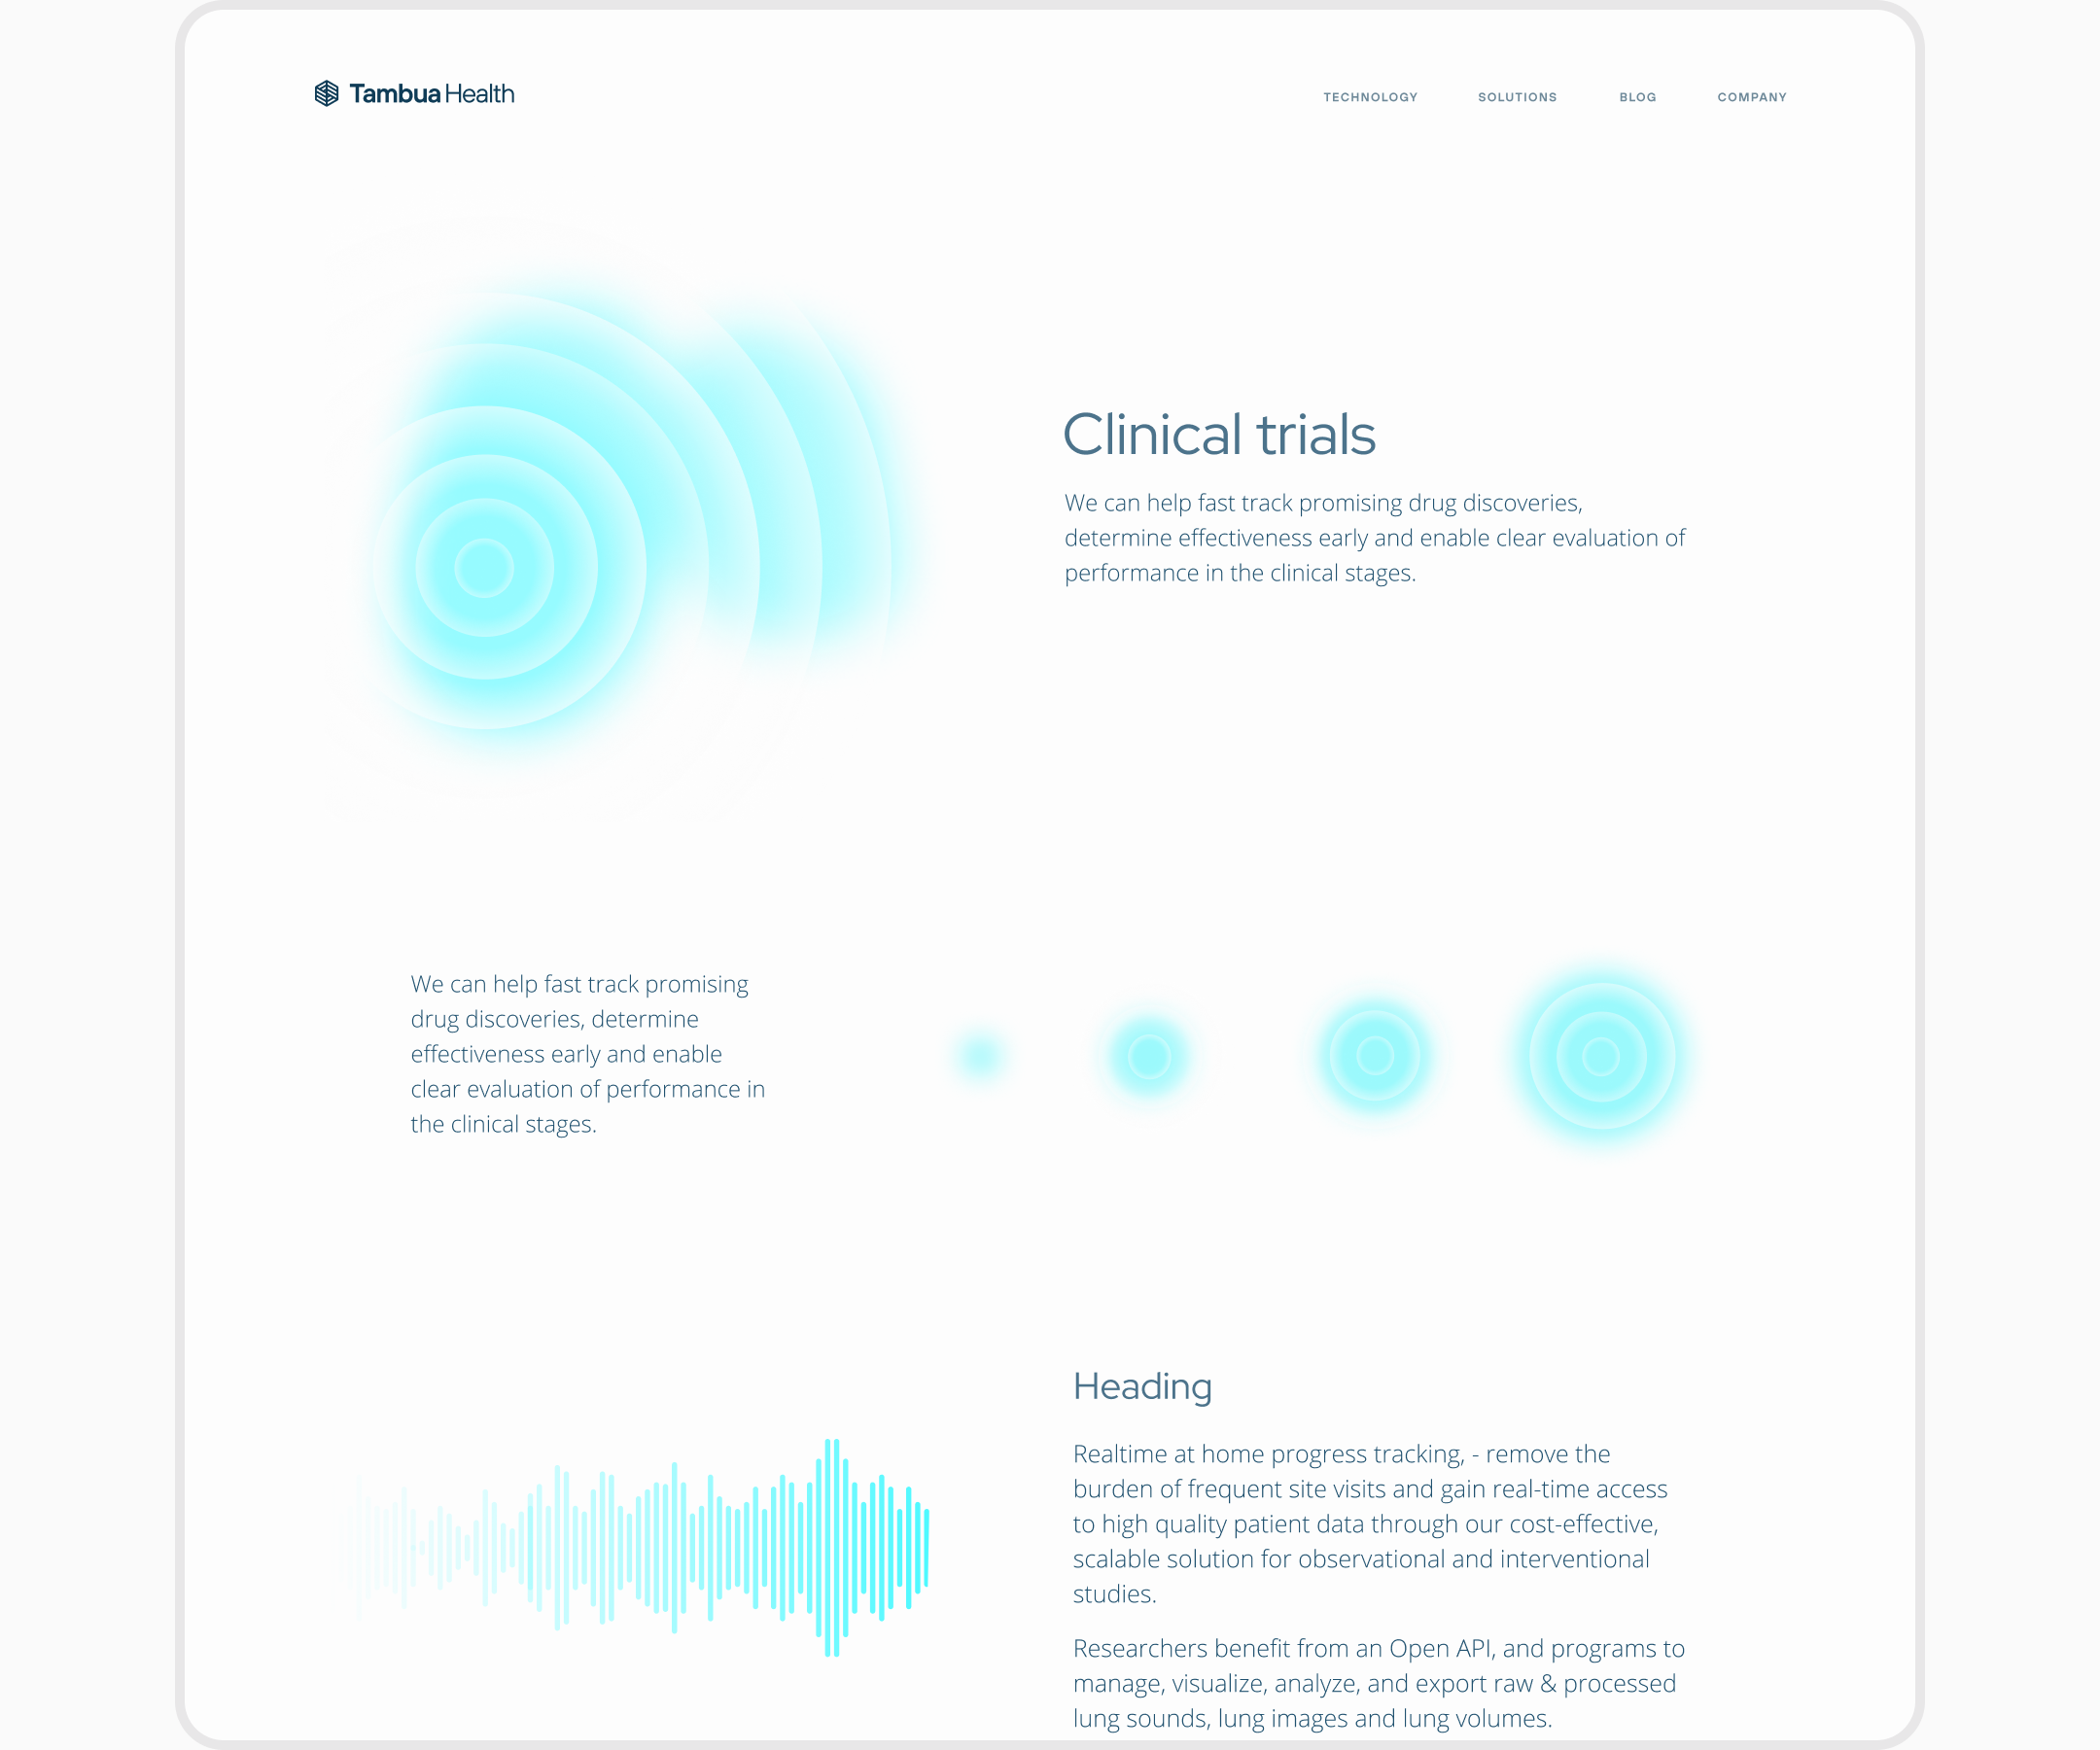 TambuaHealth website by Embacy